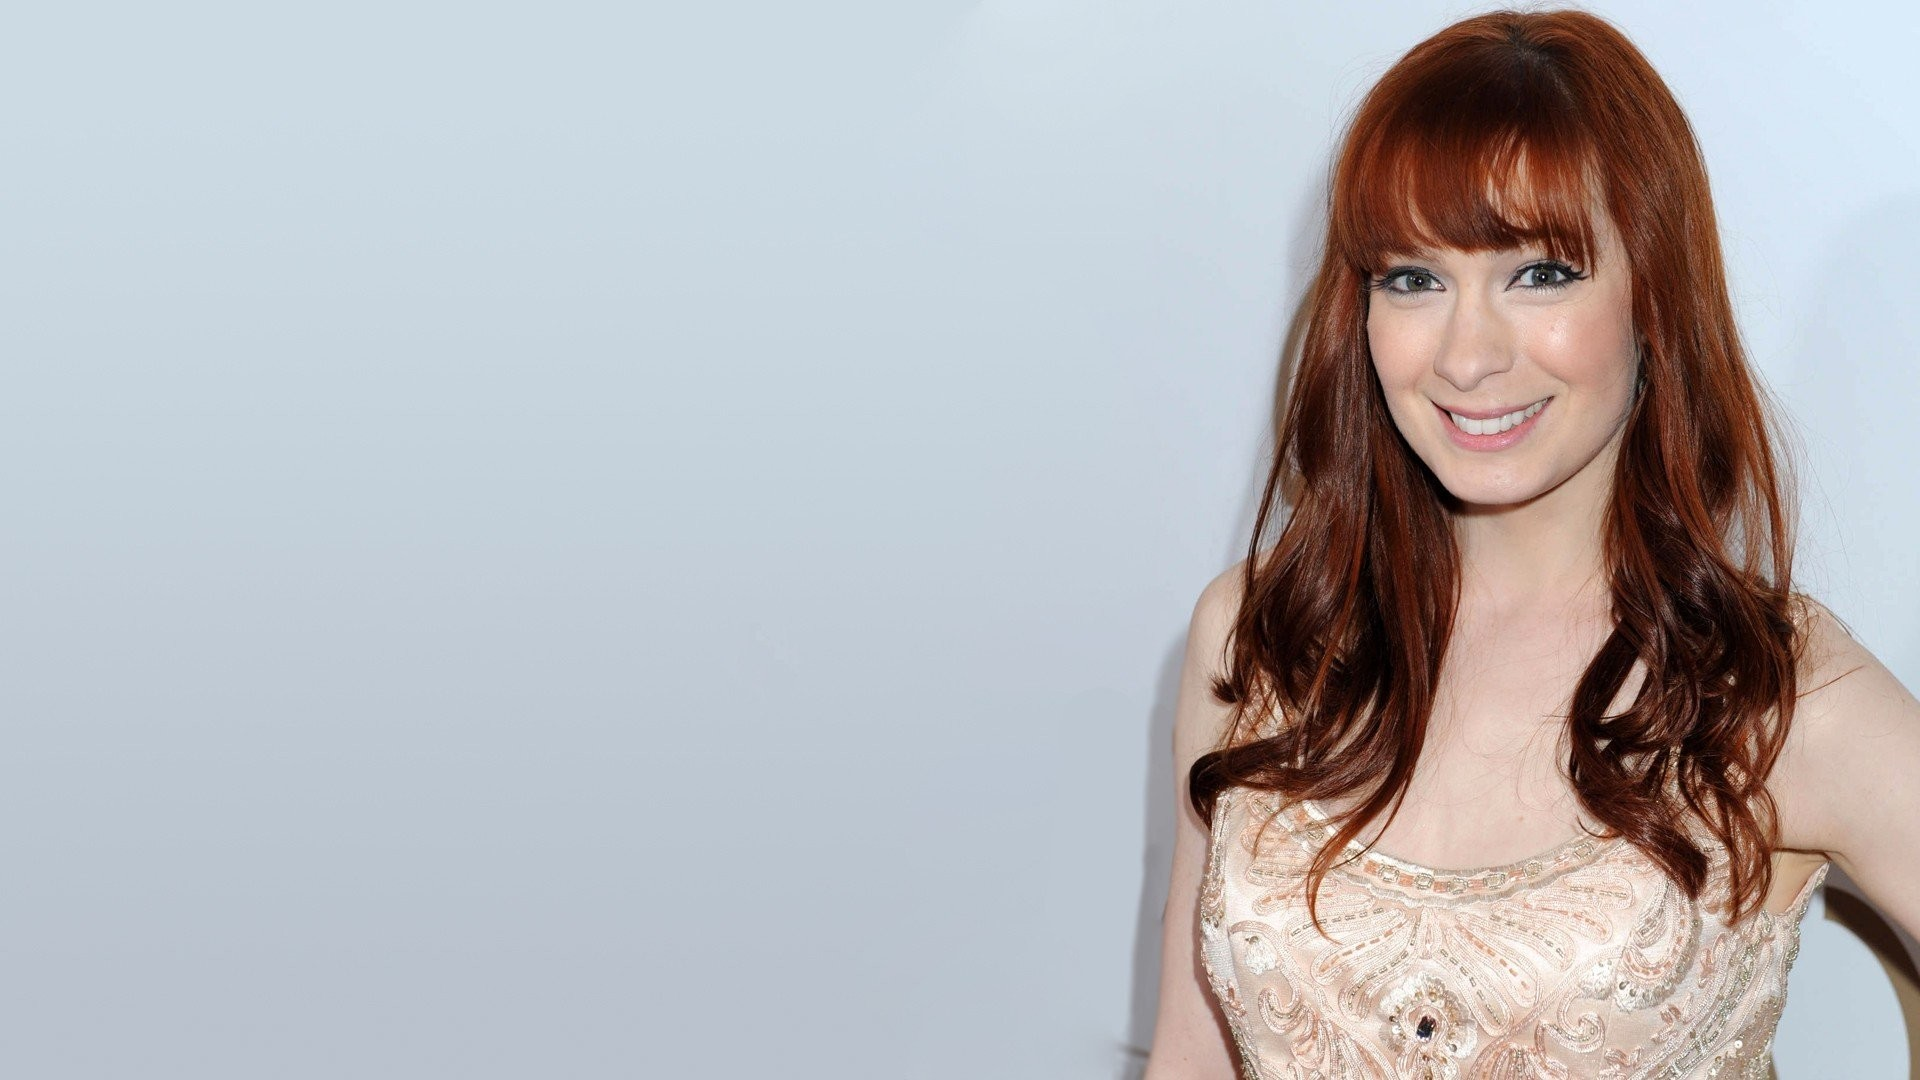 1920x1080 - Felicia Day Wallpapers 34